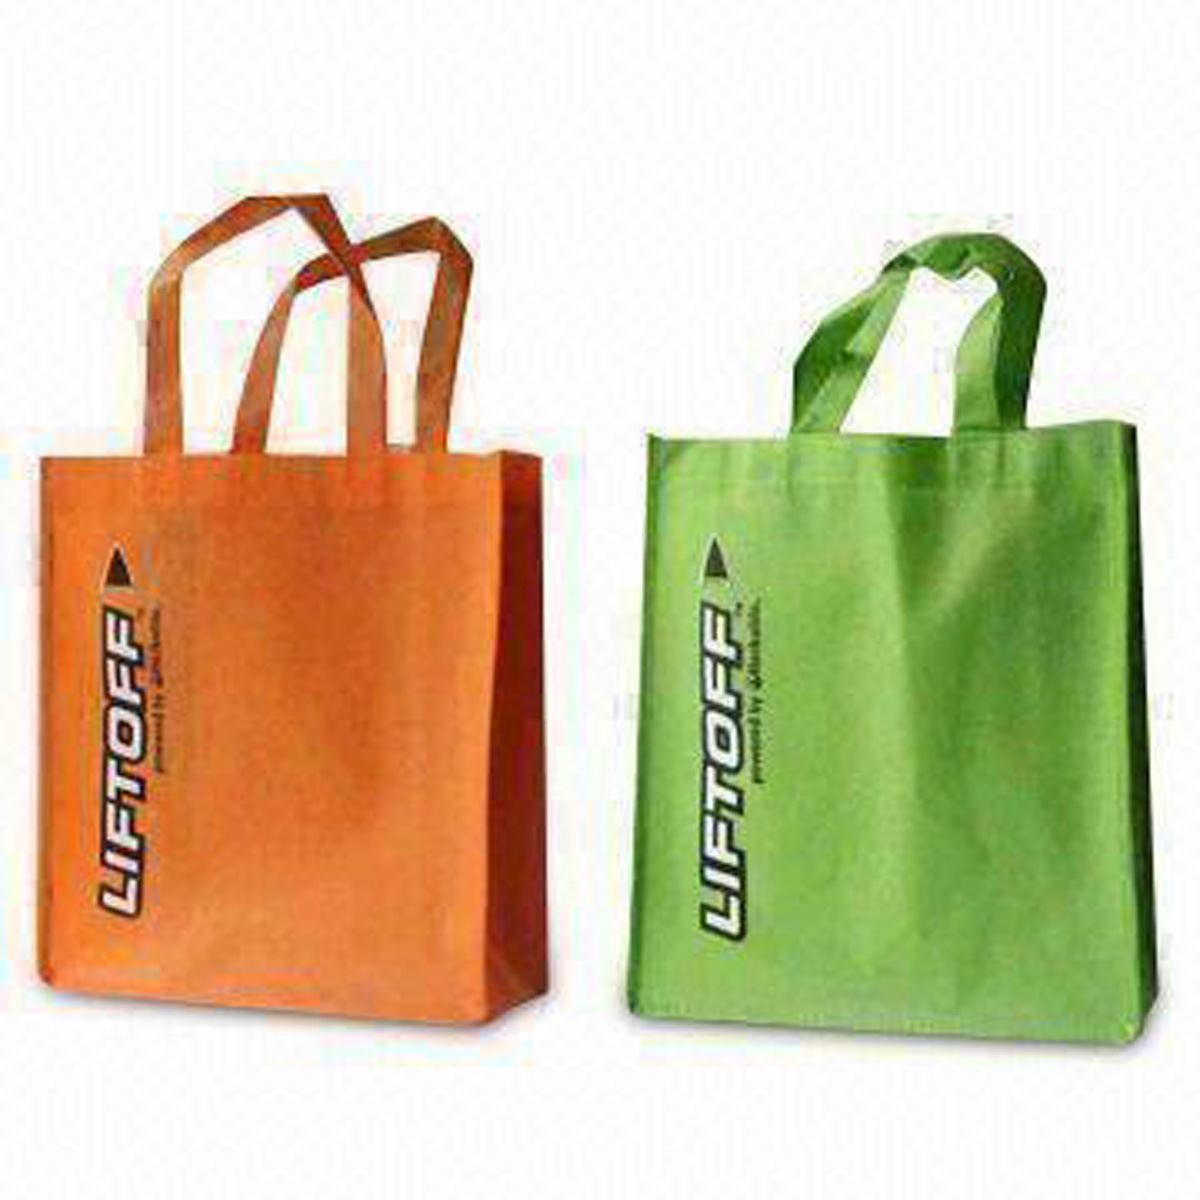 china printed shopping bags photos pictures made in. Black Bedroom Furniture Sets. Home Design Ideas